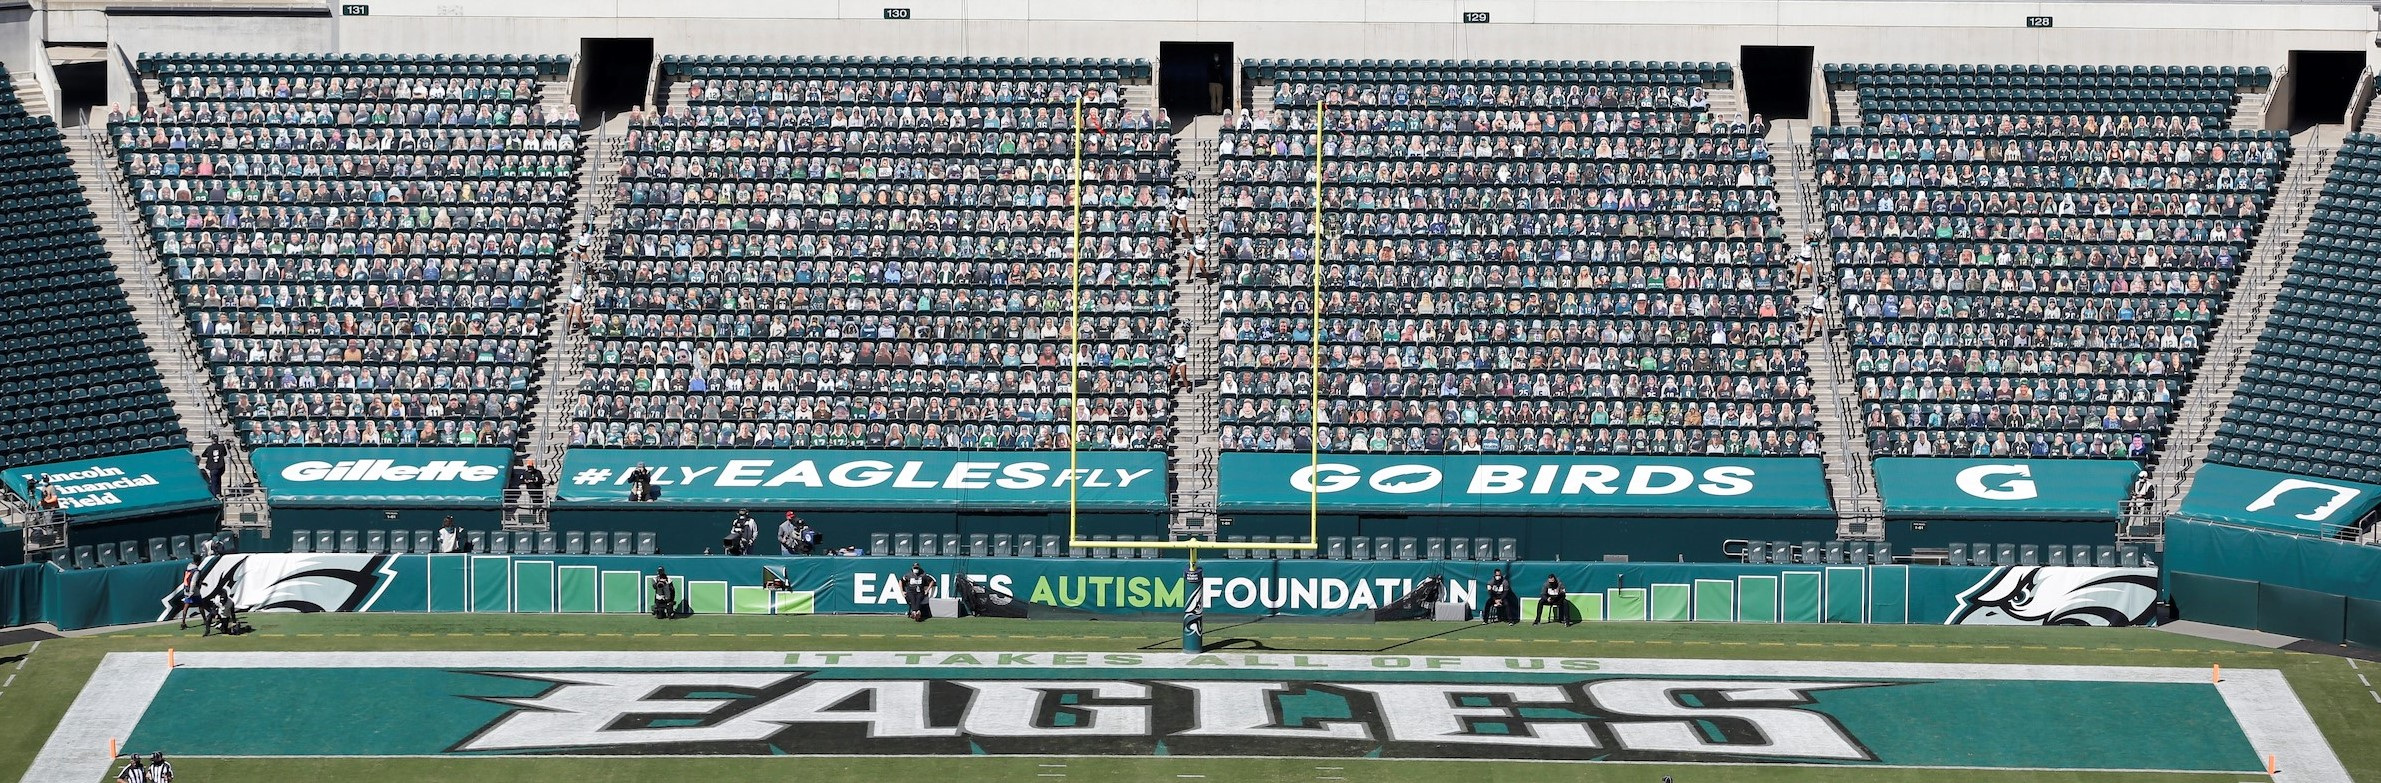 Ricoh and the Philadelphia Eagles partner to offer fan cutouts.